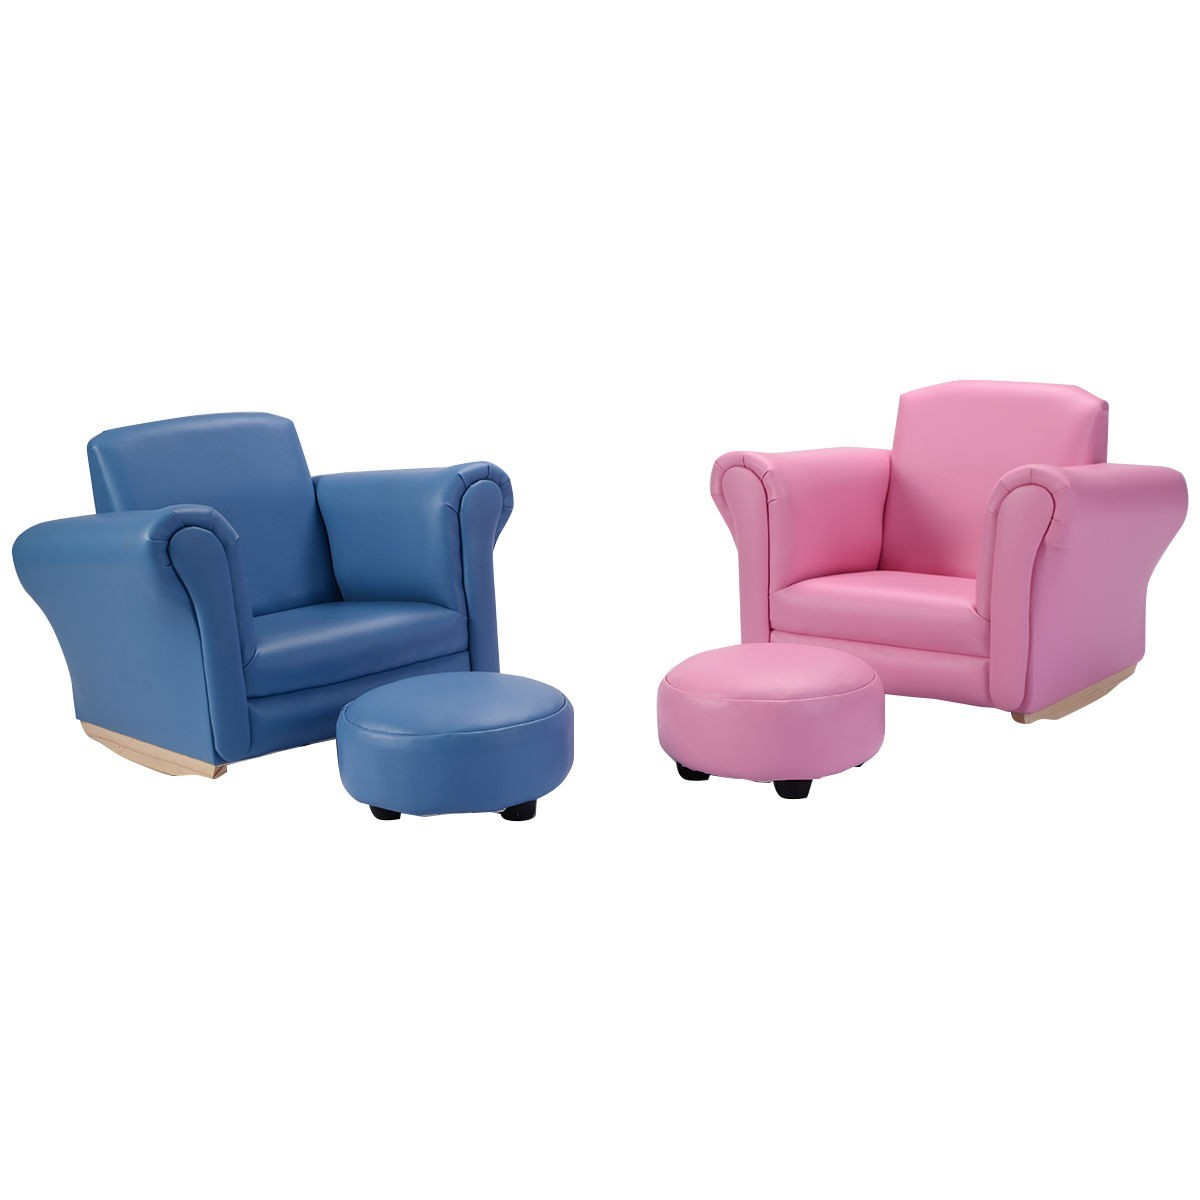 Kids Sofa Armrest Couch with A Footstool 2 Colors Pink by